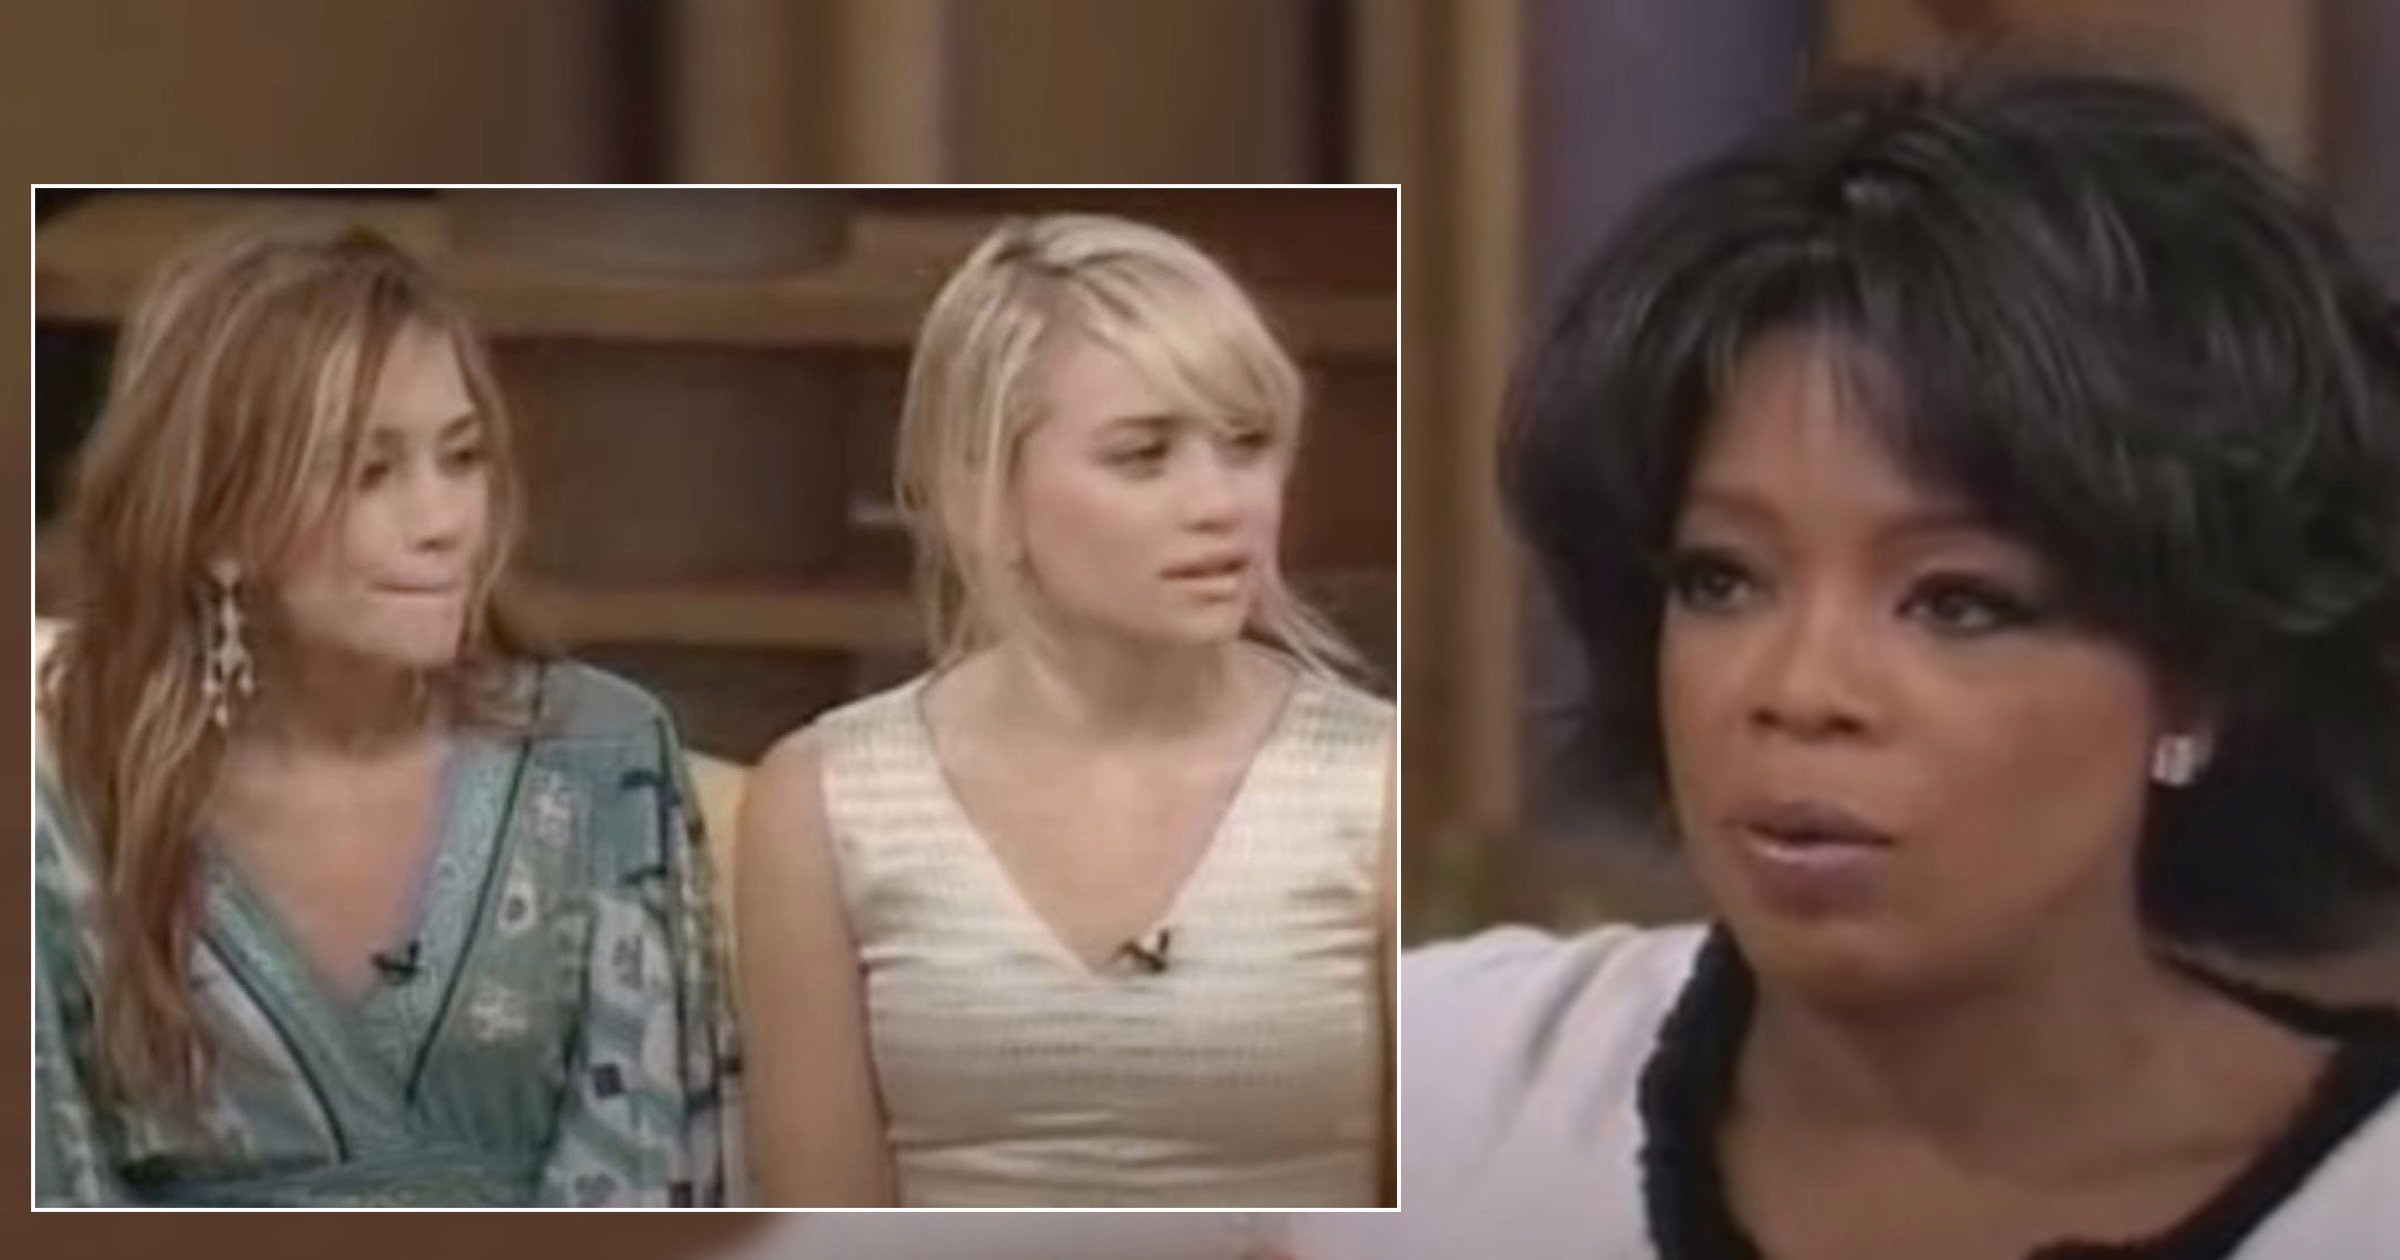 Horror as Oprah Winfrey asks Mary-Kate and Ashley Olsen about their size in resurfaced interview